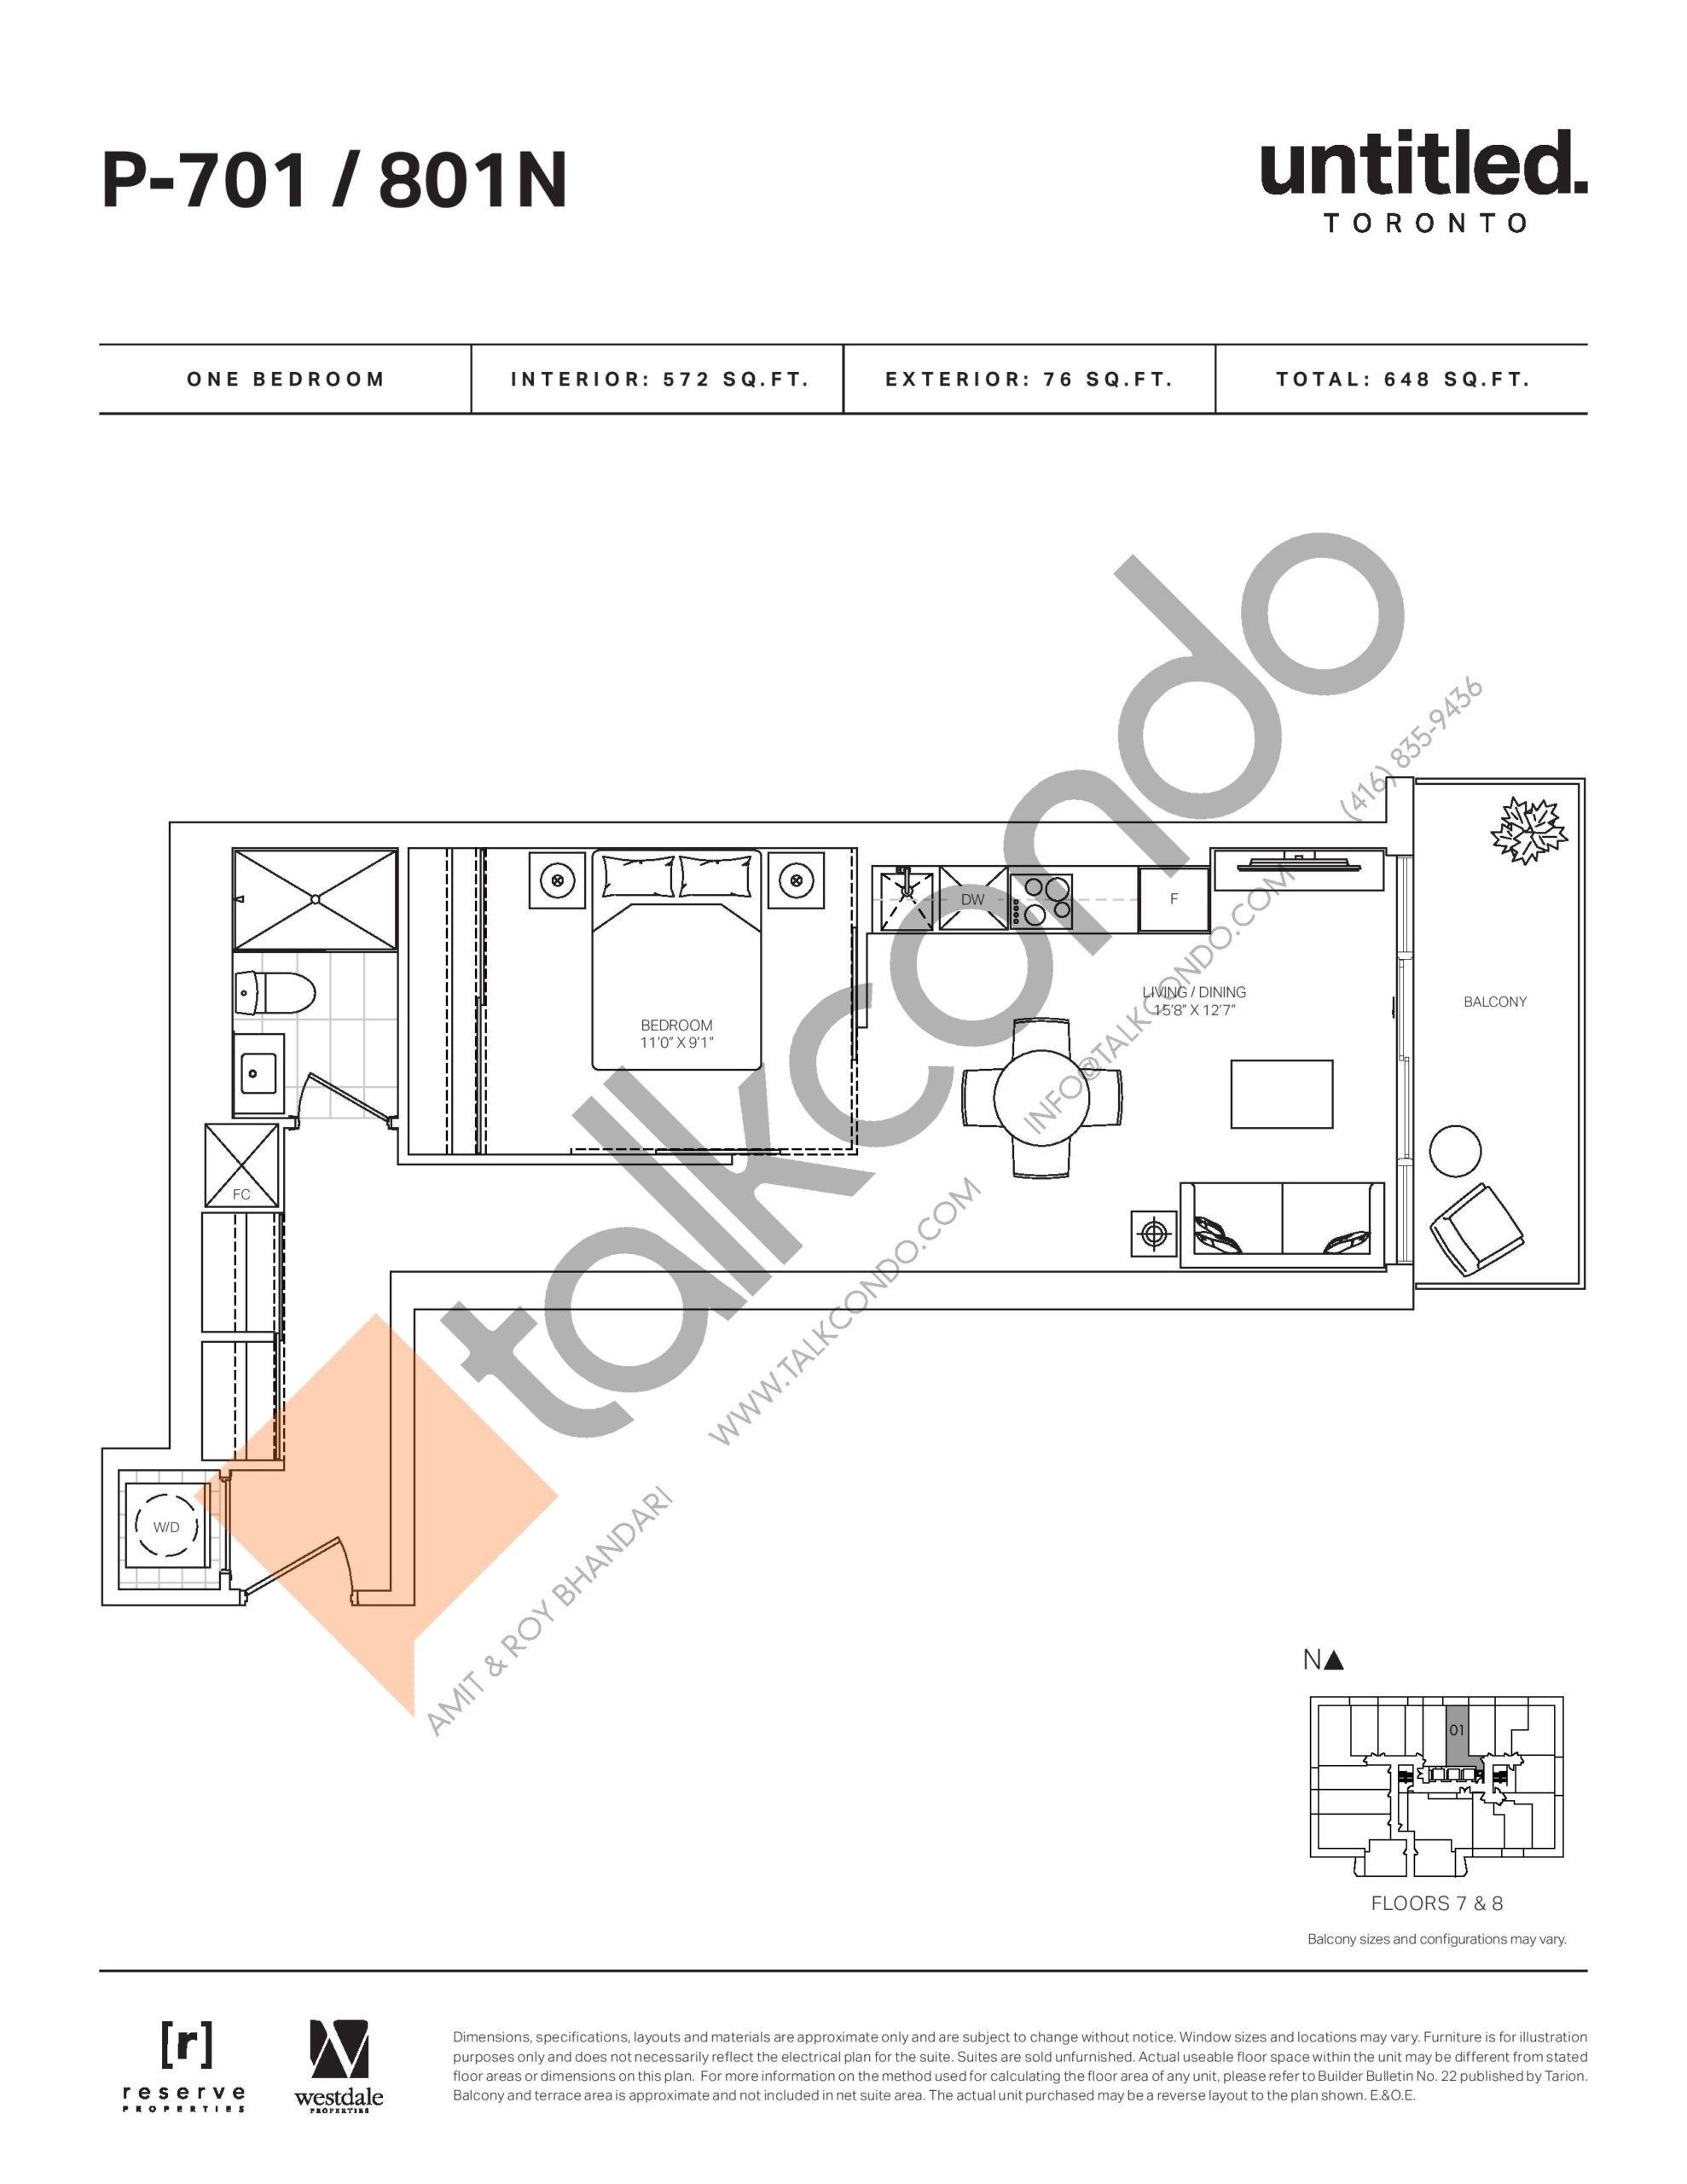 P-701 / 801N Floor Plan at Untitled North Tower Condos - 572 sq.ft